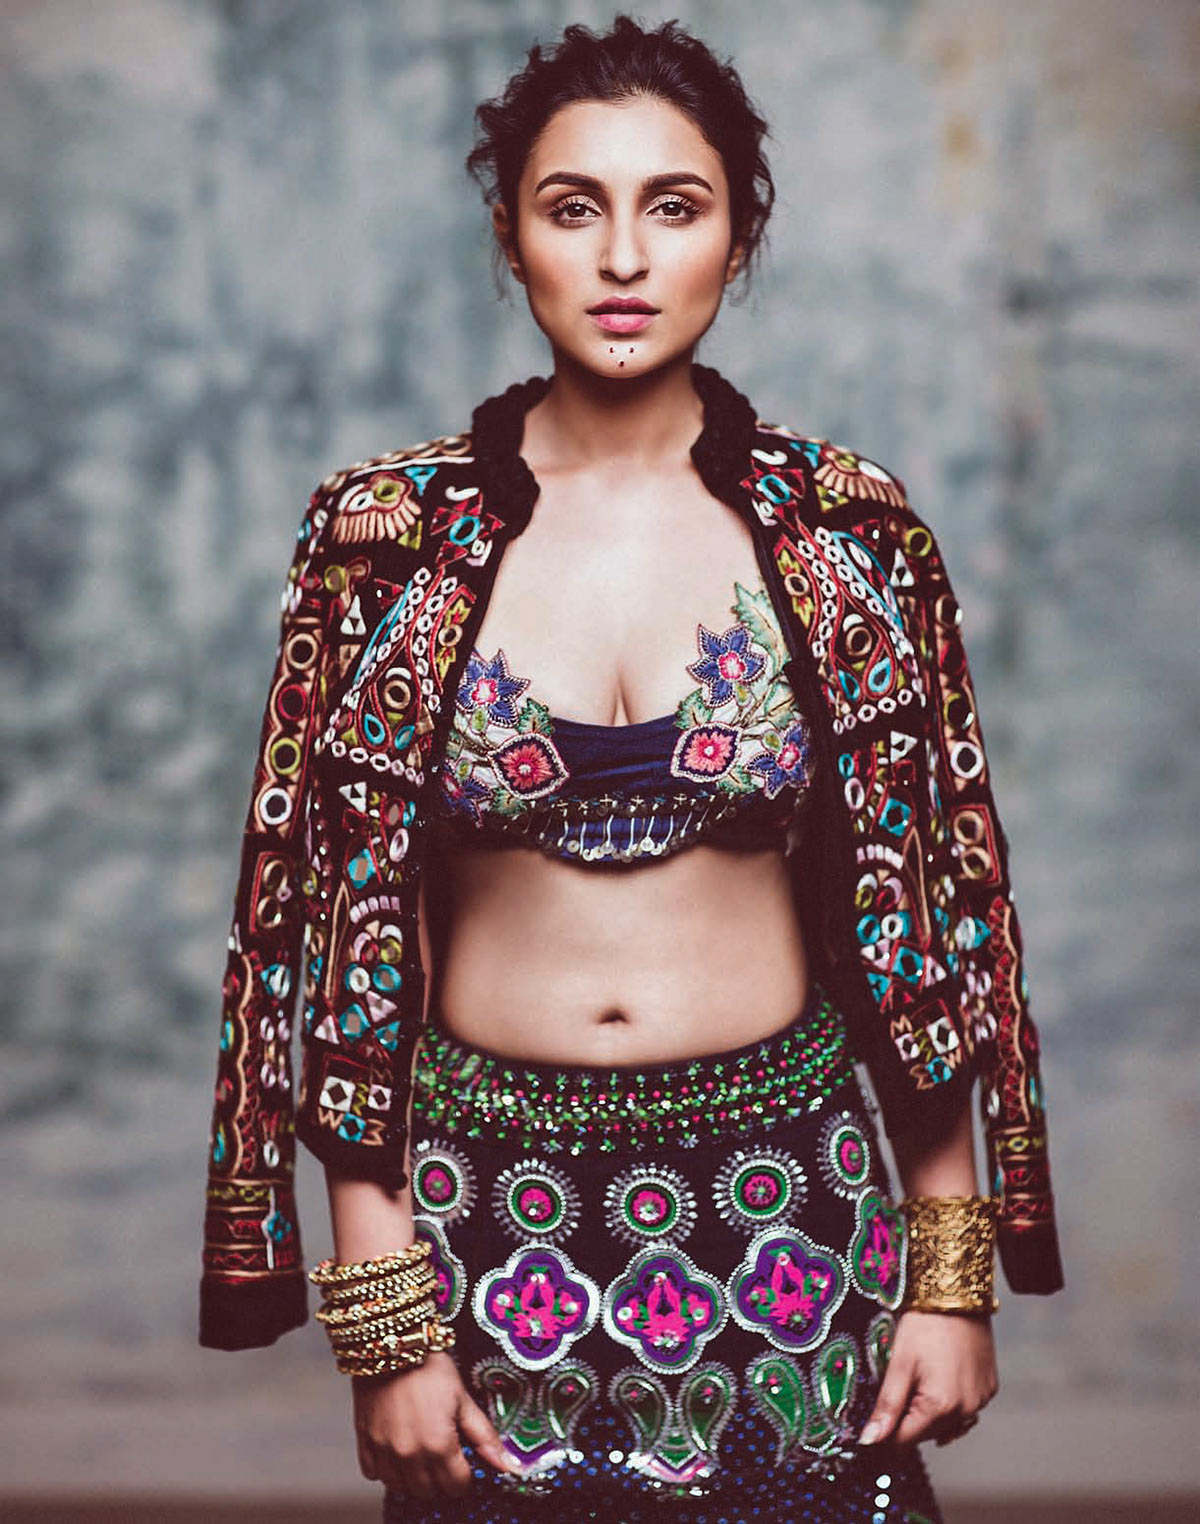 Parineeti Chopra Hot Harper's Bazaar Bride Photoshoot